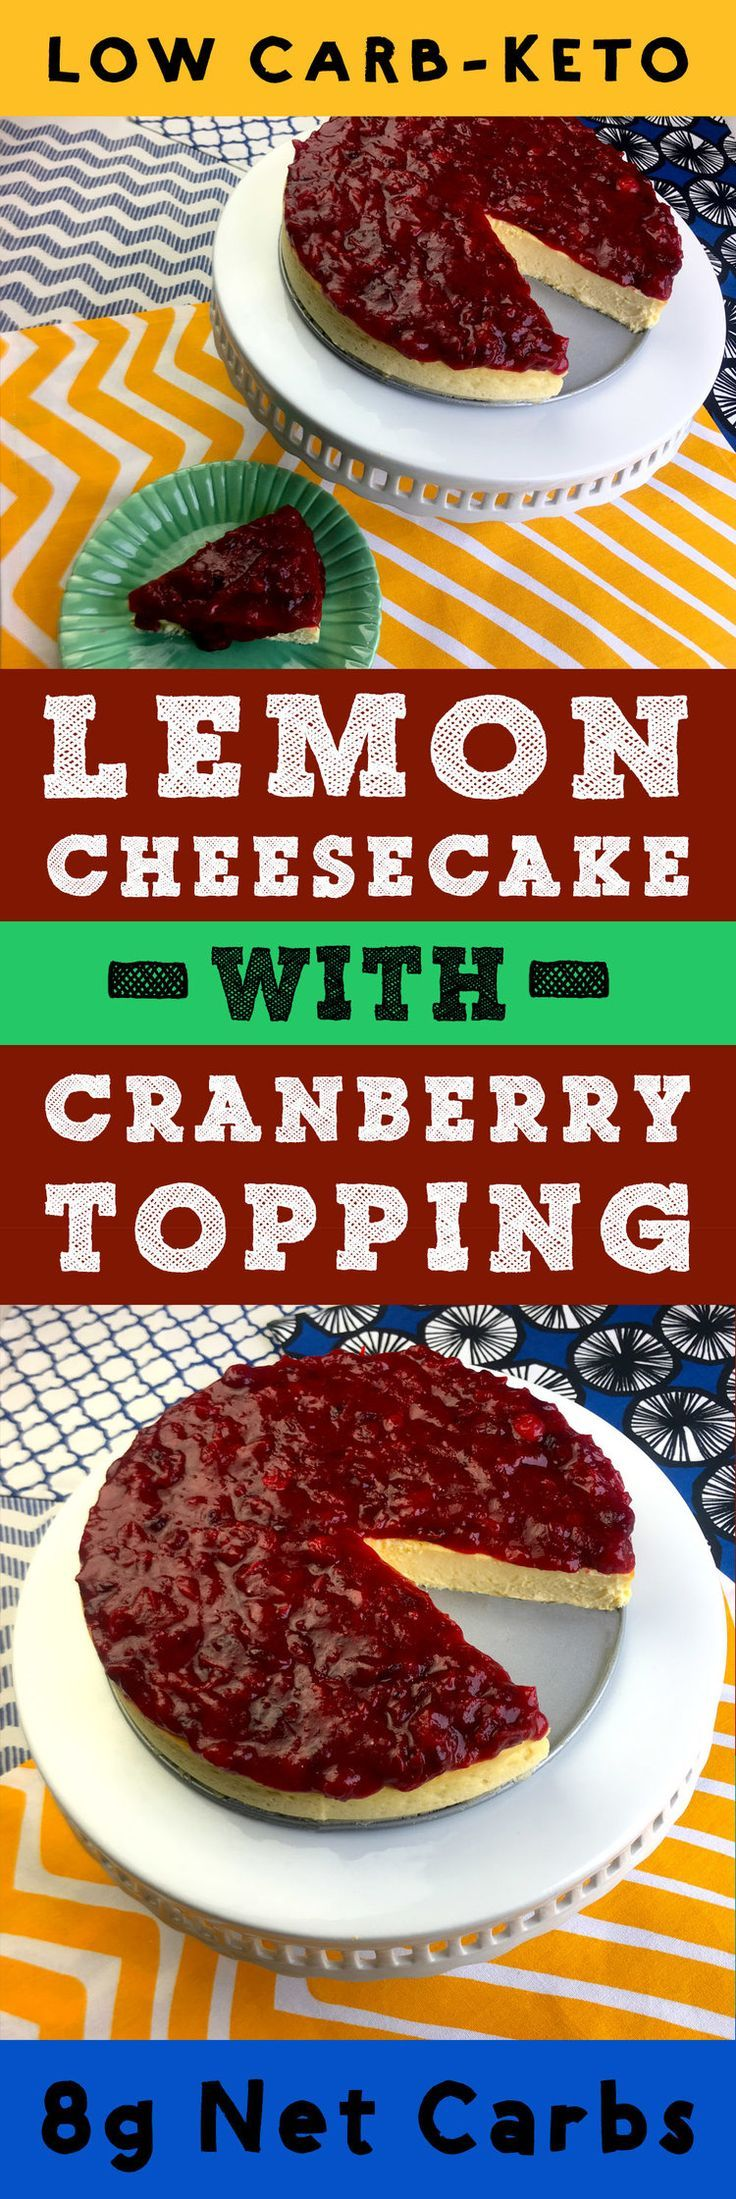 This recipe for Low Carb Lemon Ricotta Cheesecake with Cranberry Topping is Sugar Free and Gluten Free  It's also tasty as all get out.